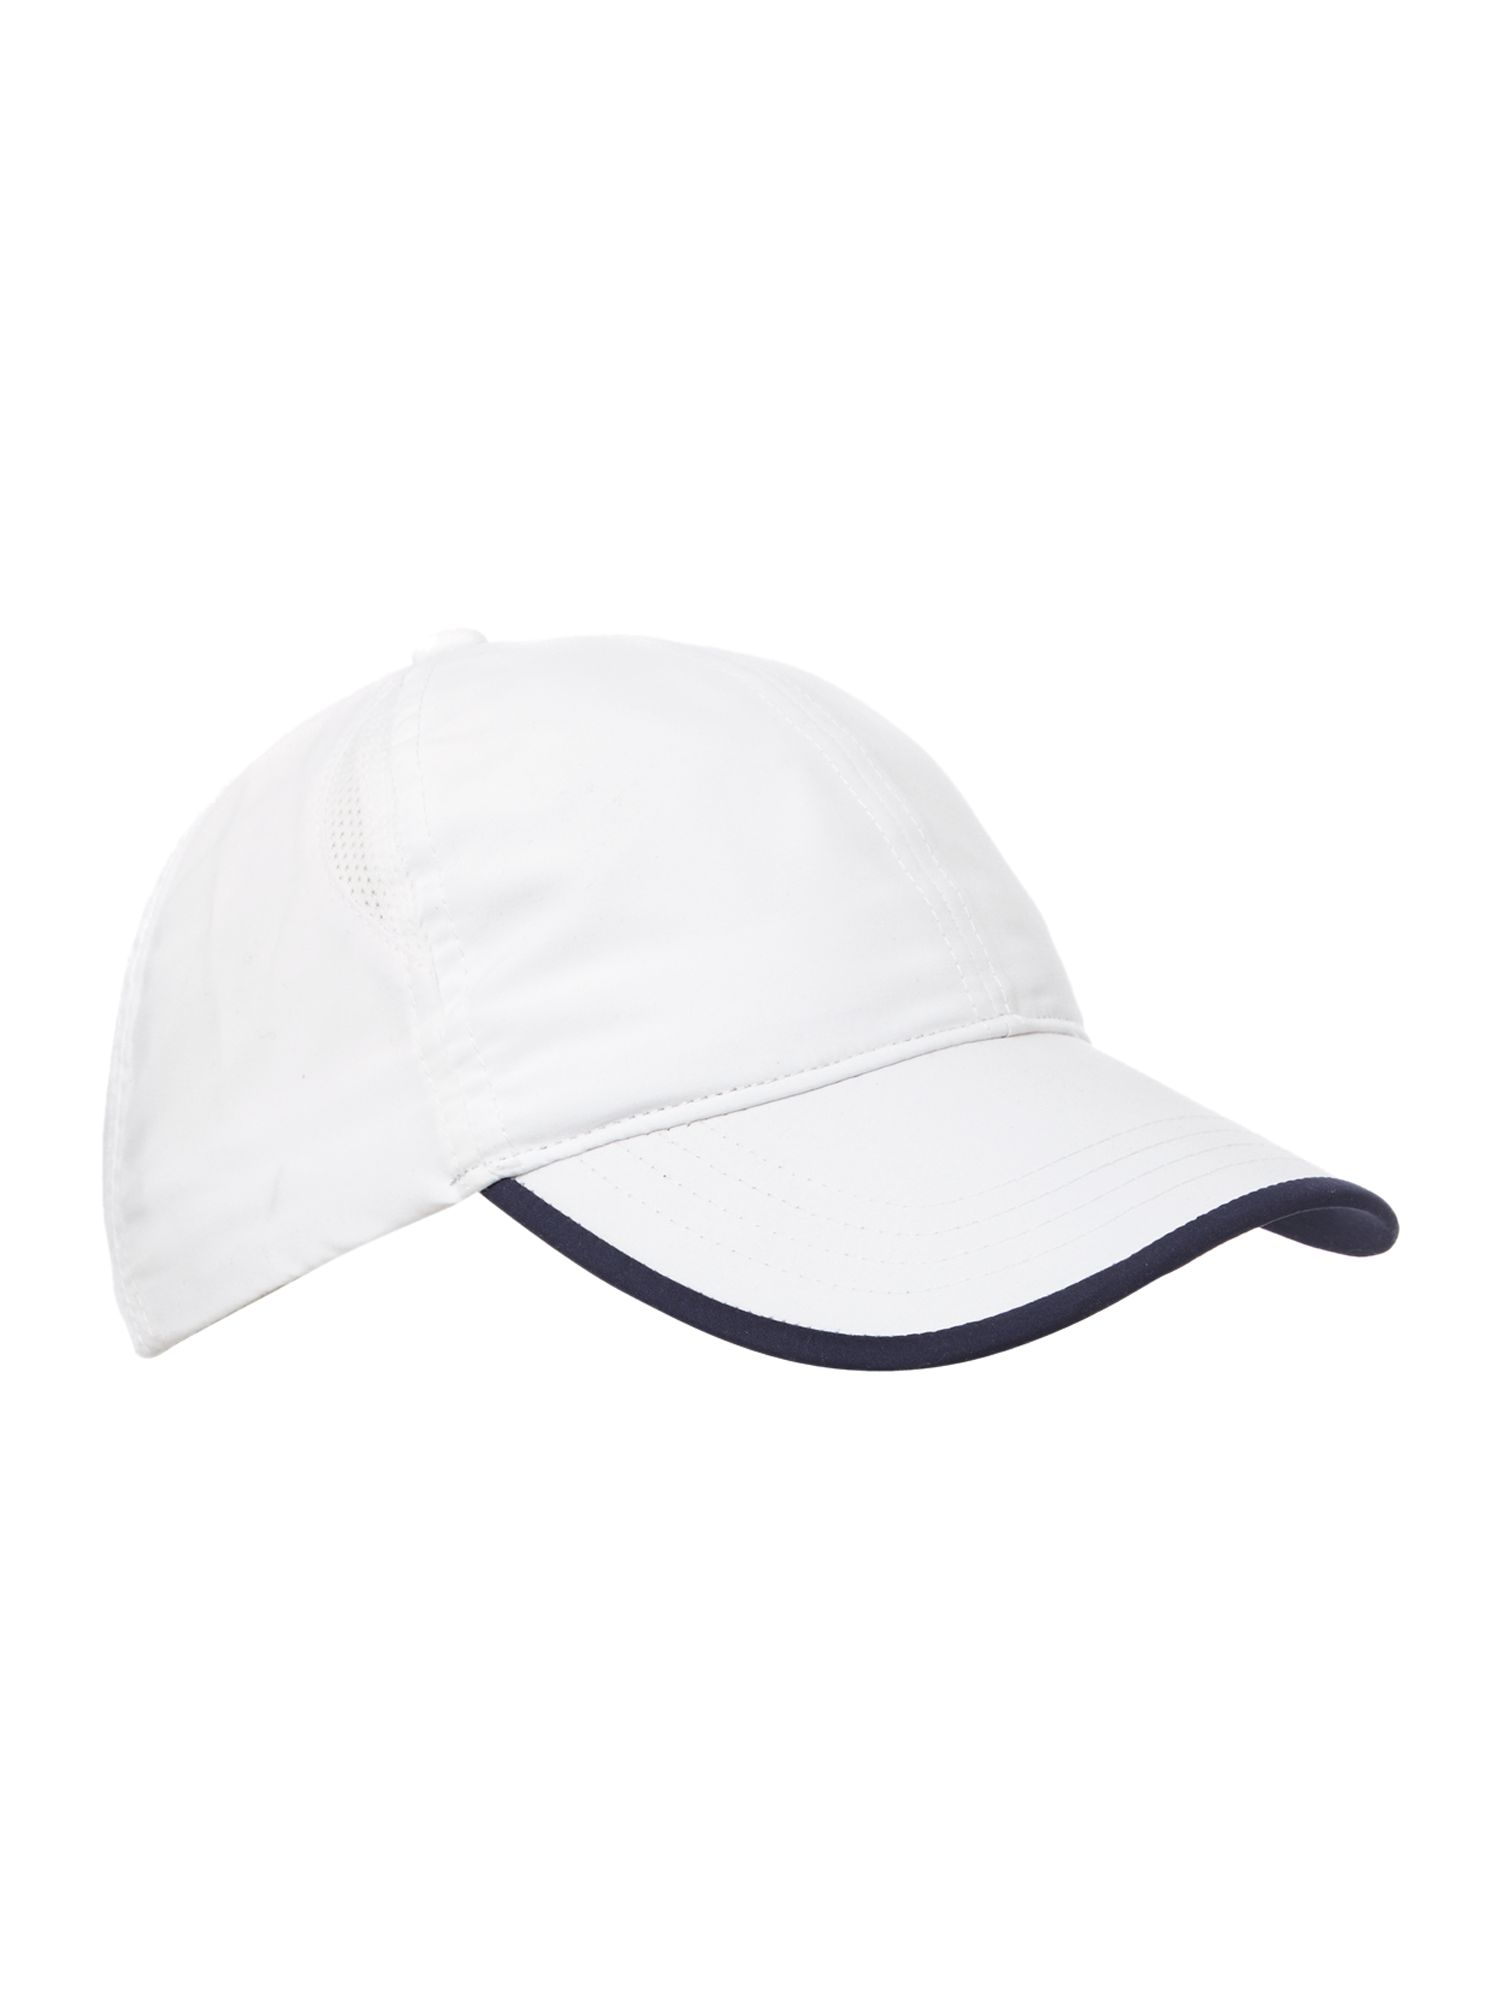 fred perry baseball tennis cap in white for men lyst. Black Bedroom Furniture Sets. Home Design Ideas